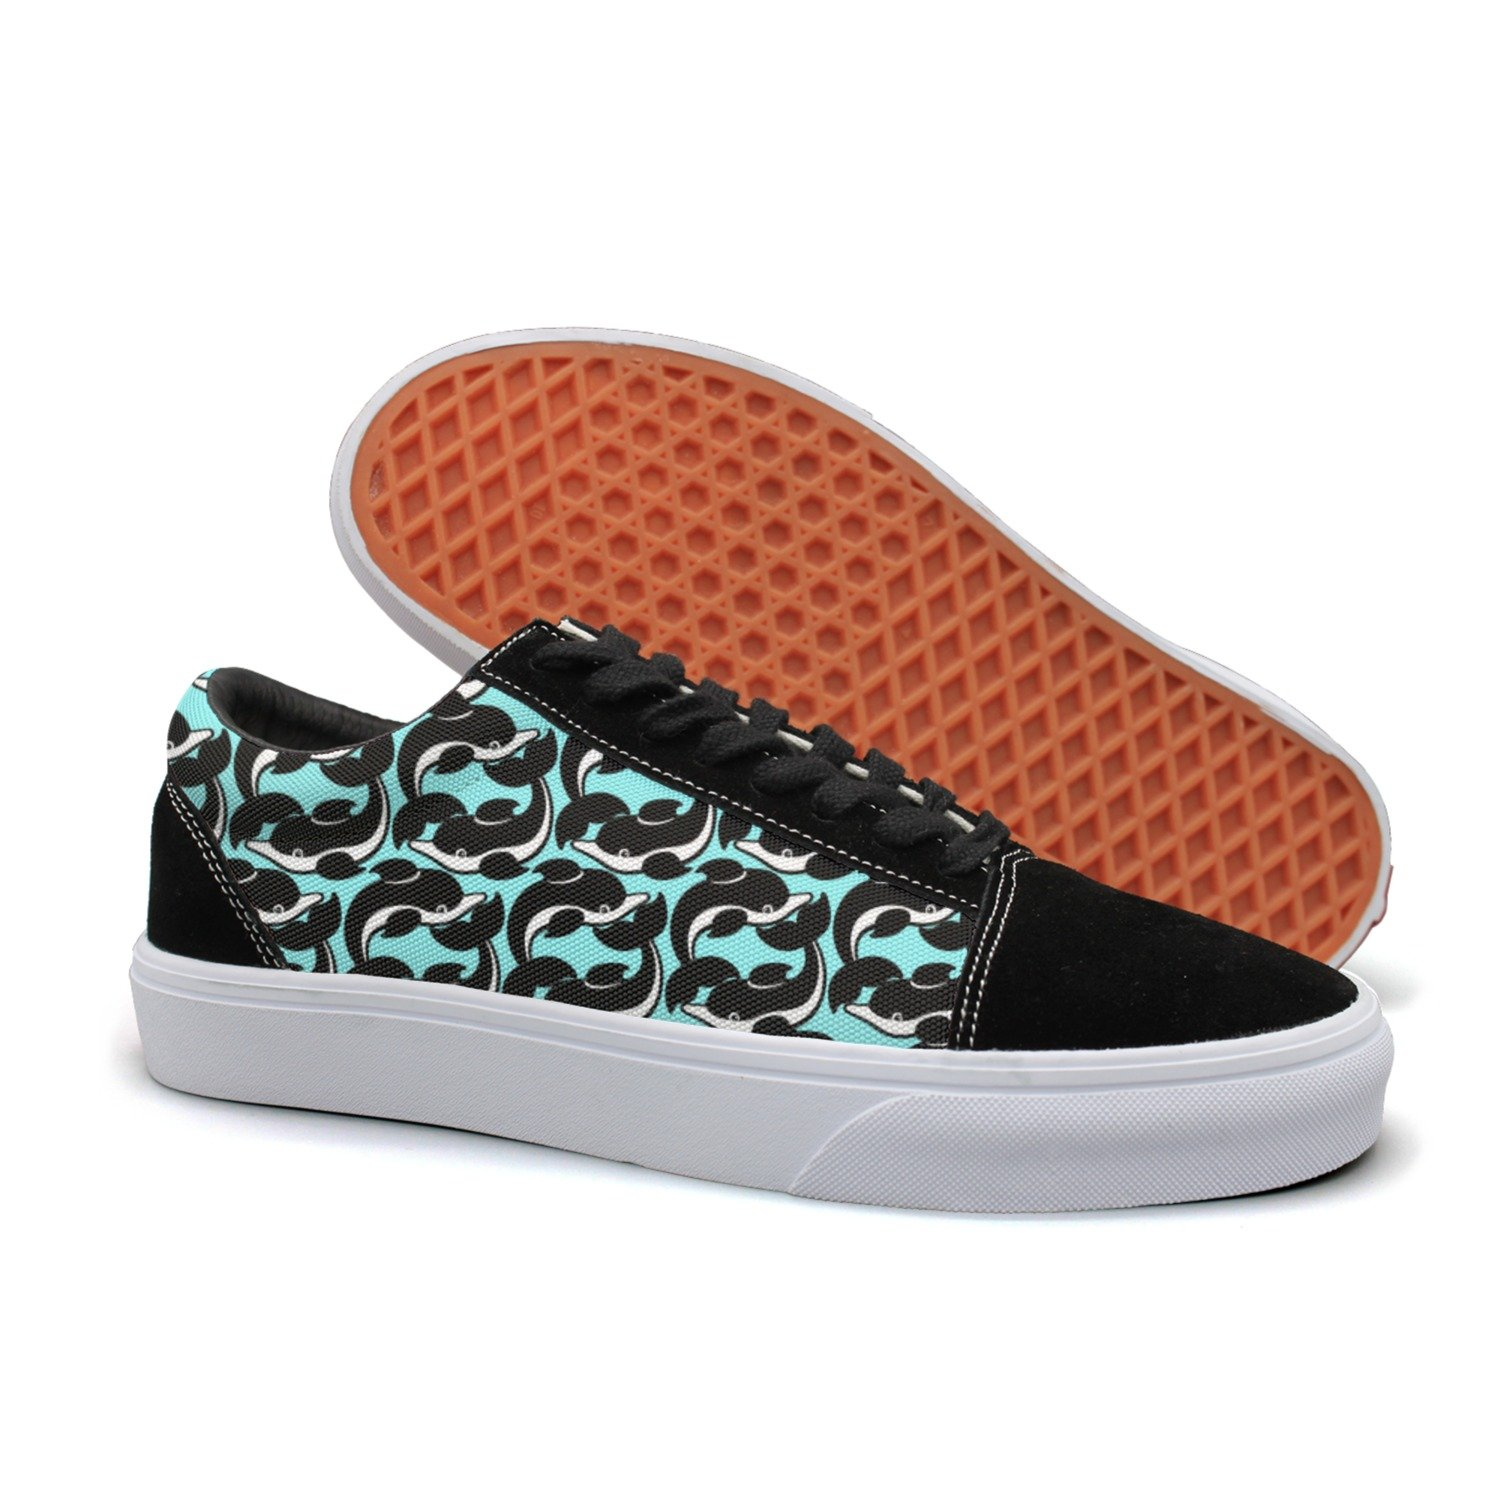 YCFTA Small Whale Men Casual Sneakers Skateboard Customize New Gym